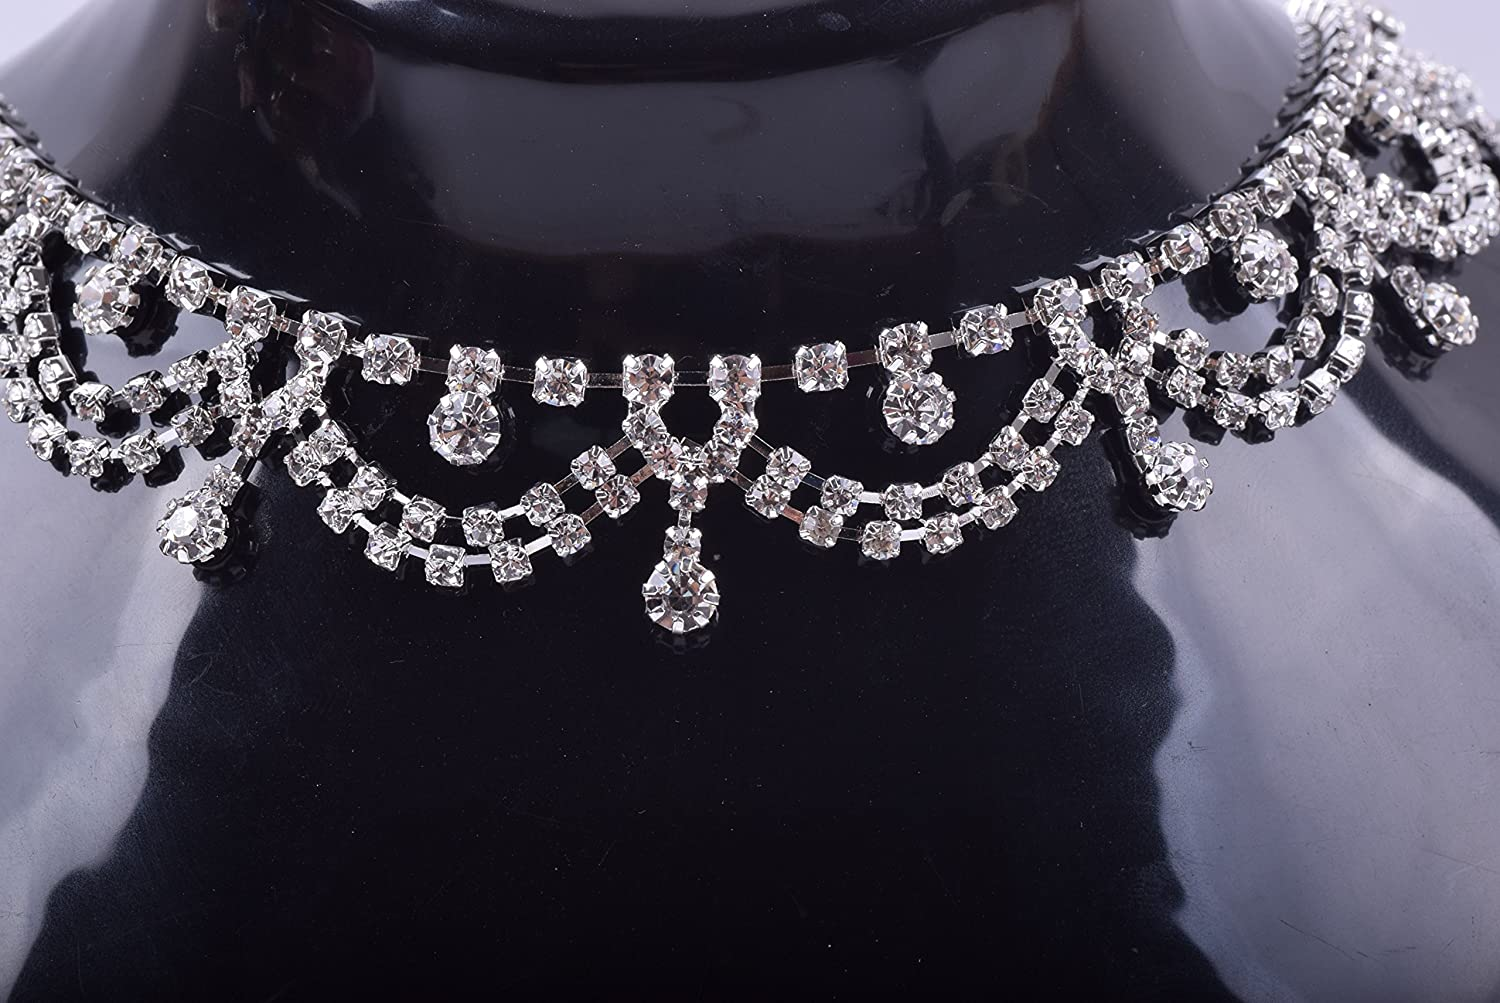 KAOYOO 1 Yard Rhombus Crystal Rhinestone Chain Trim with Clear Rhinestone Silver Brass Base Prong for Sewing Trims Wedding Decoration or as a Present for Your Friends